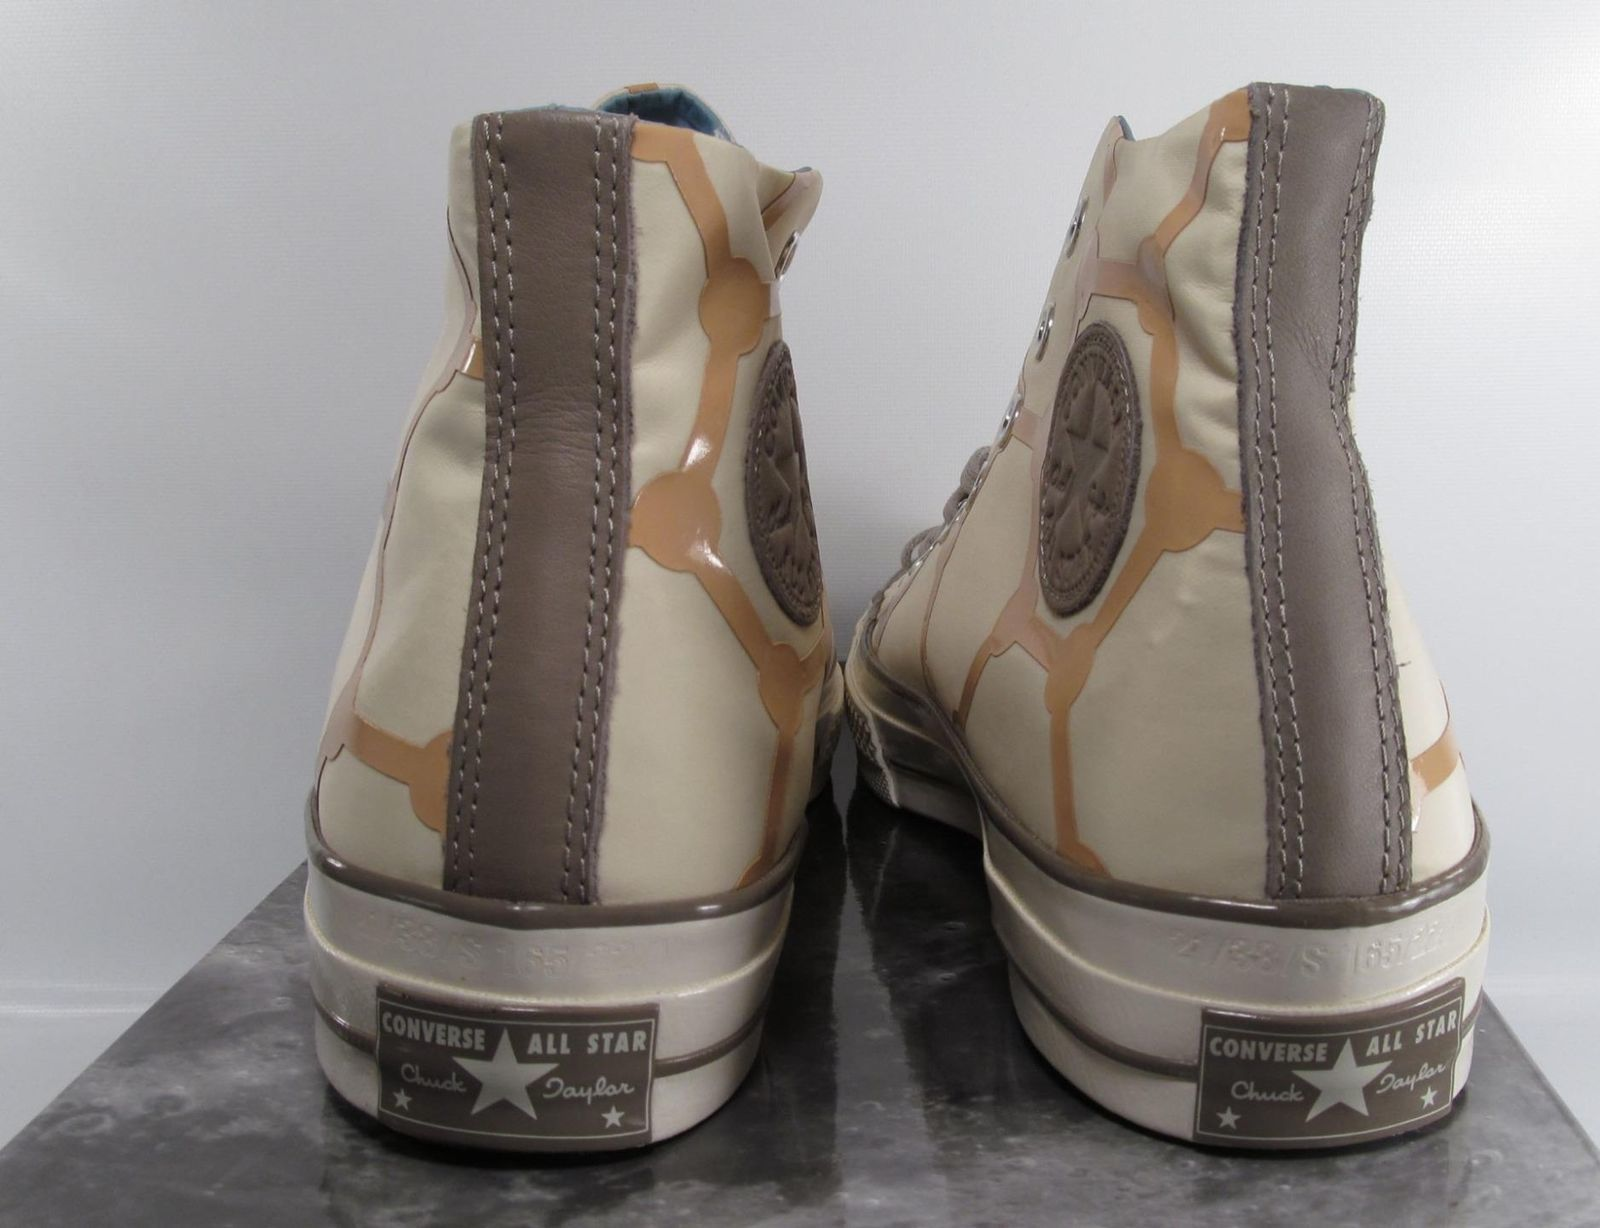 680037270dfa Converse Chuck Taylor All Star 70 s Fuse High SPACE PACK Sattelite 150873C  RARE!